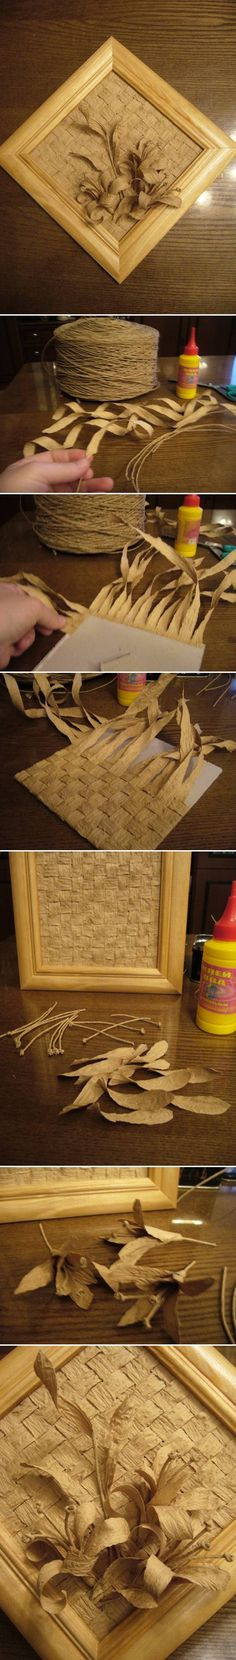 DIY Paper Twine Panel DIY Projects | UsefulDIY.com Follow Us on Facebook ==> http://www.facebook.com/UsefulDiy